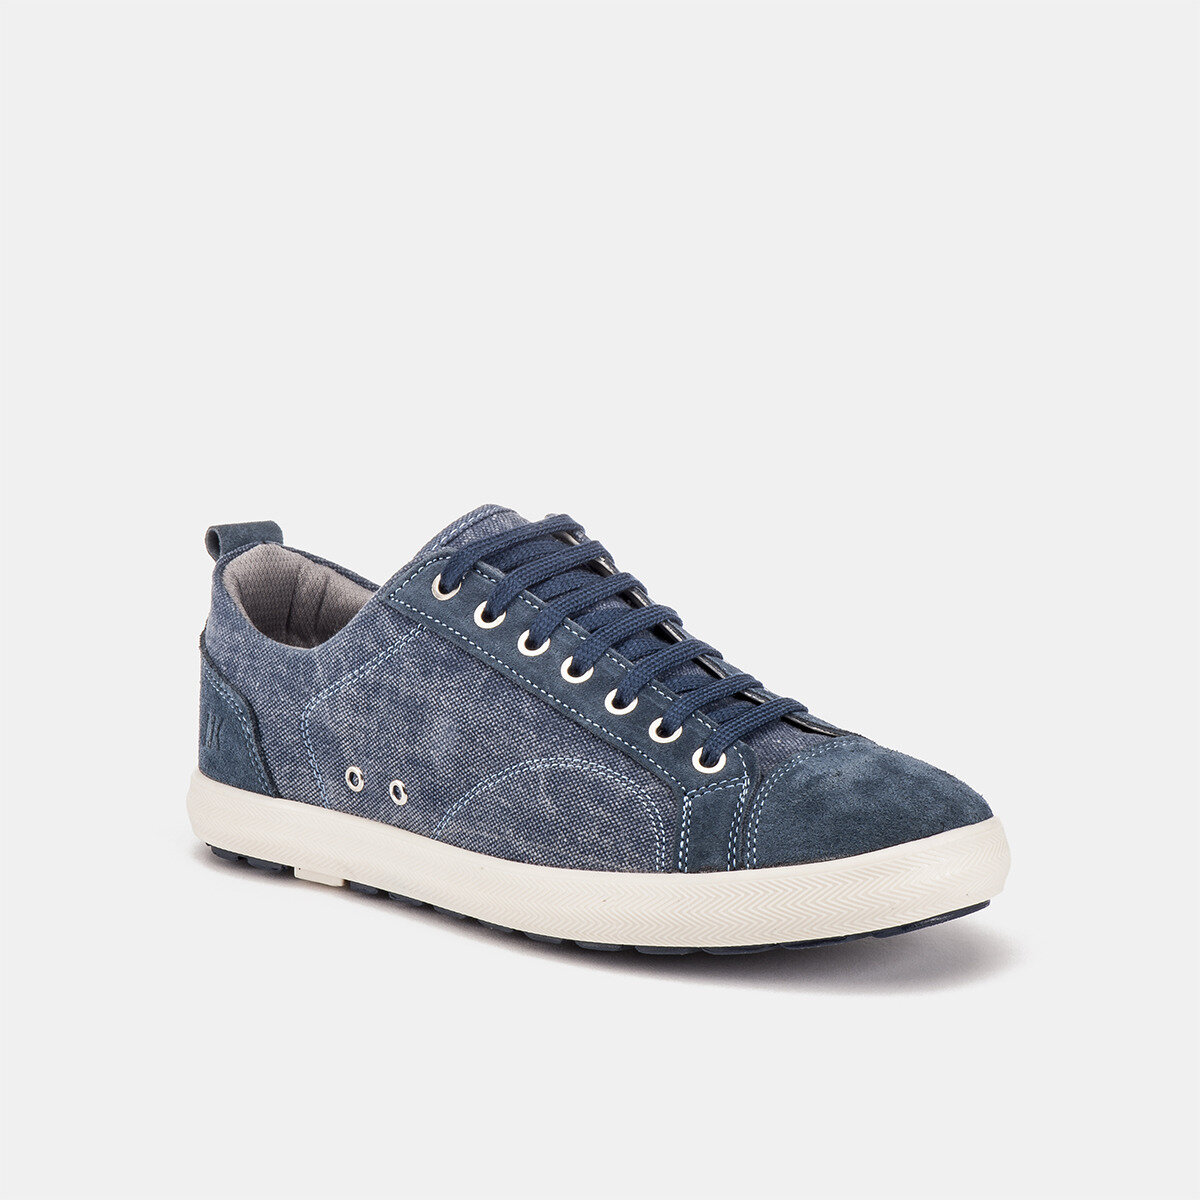 WOLF JEANS Man Sneakers